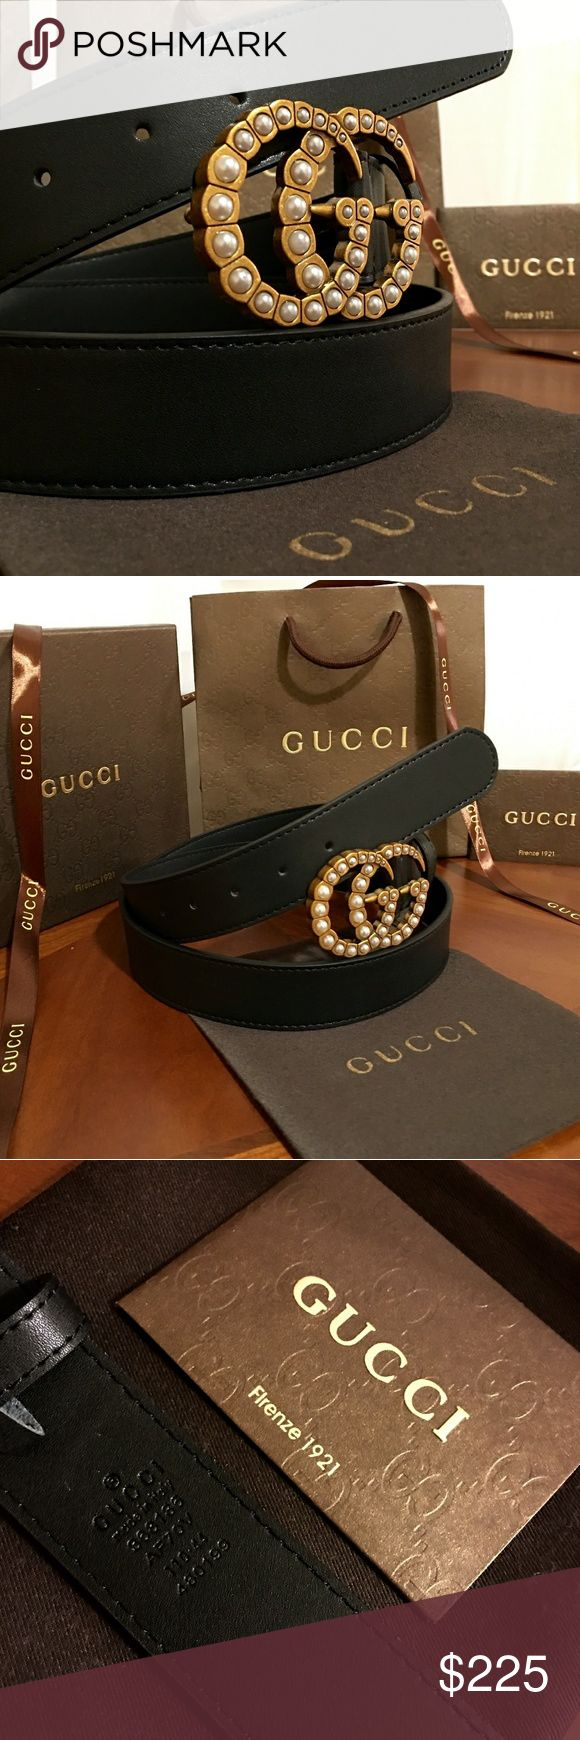 """Gucci Double G Belt!!! Gucci GG Belt W/Pearl & Antique Brass Double G Buckle!!!  Brand New!!!  Size Available - 28"""", 30"""", 32"""", 34"""", 36"""", 38"""", 40"""", 42""""!!!  Includes Gucci Belt, Gift Box, Dust Bag, Ribbon, Etc!!!  Great Gift Idea!!!  Last Available!!!  Check My Listings For Other Great Items!!!               Ignore: Gucci gg monogram casual dress belts men's women's guccissma leather gold silver web tiger bee embossed panther wool cable knit blooms supreme print angry cat ufo dragon studded…"""